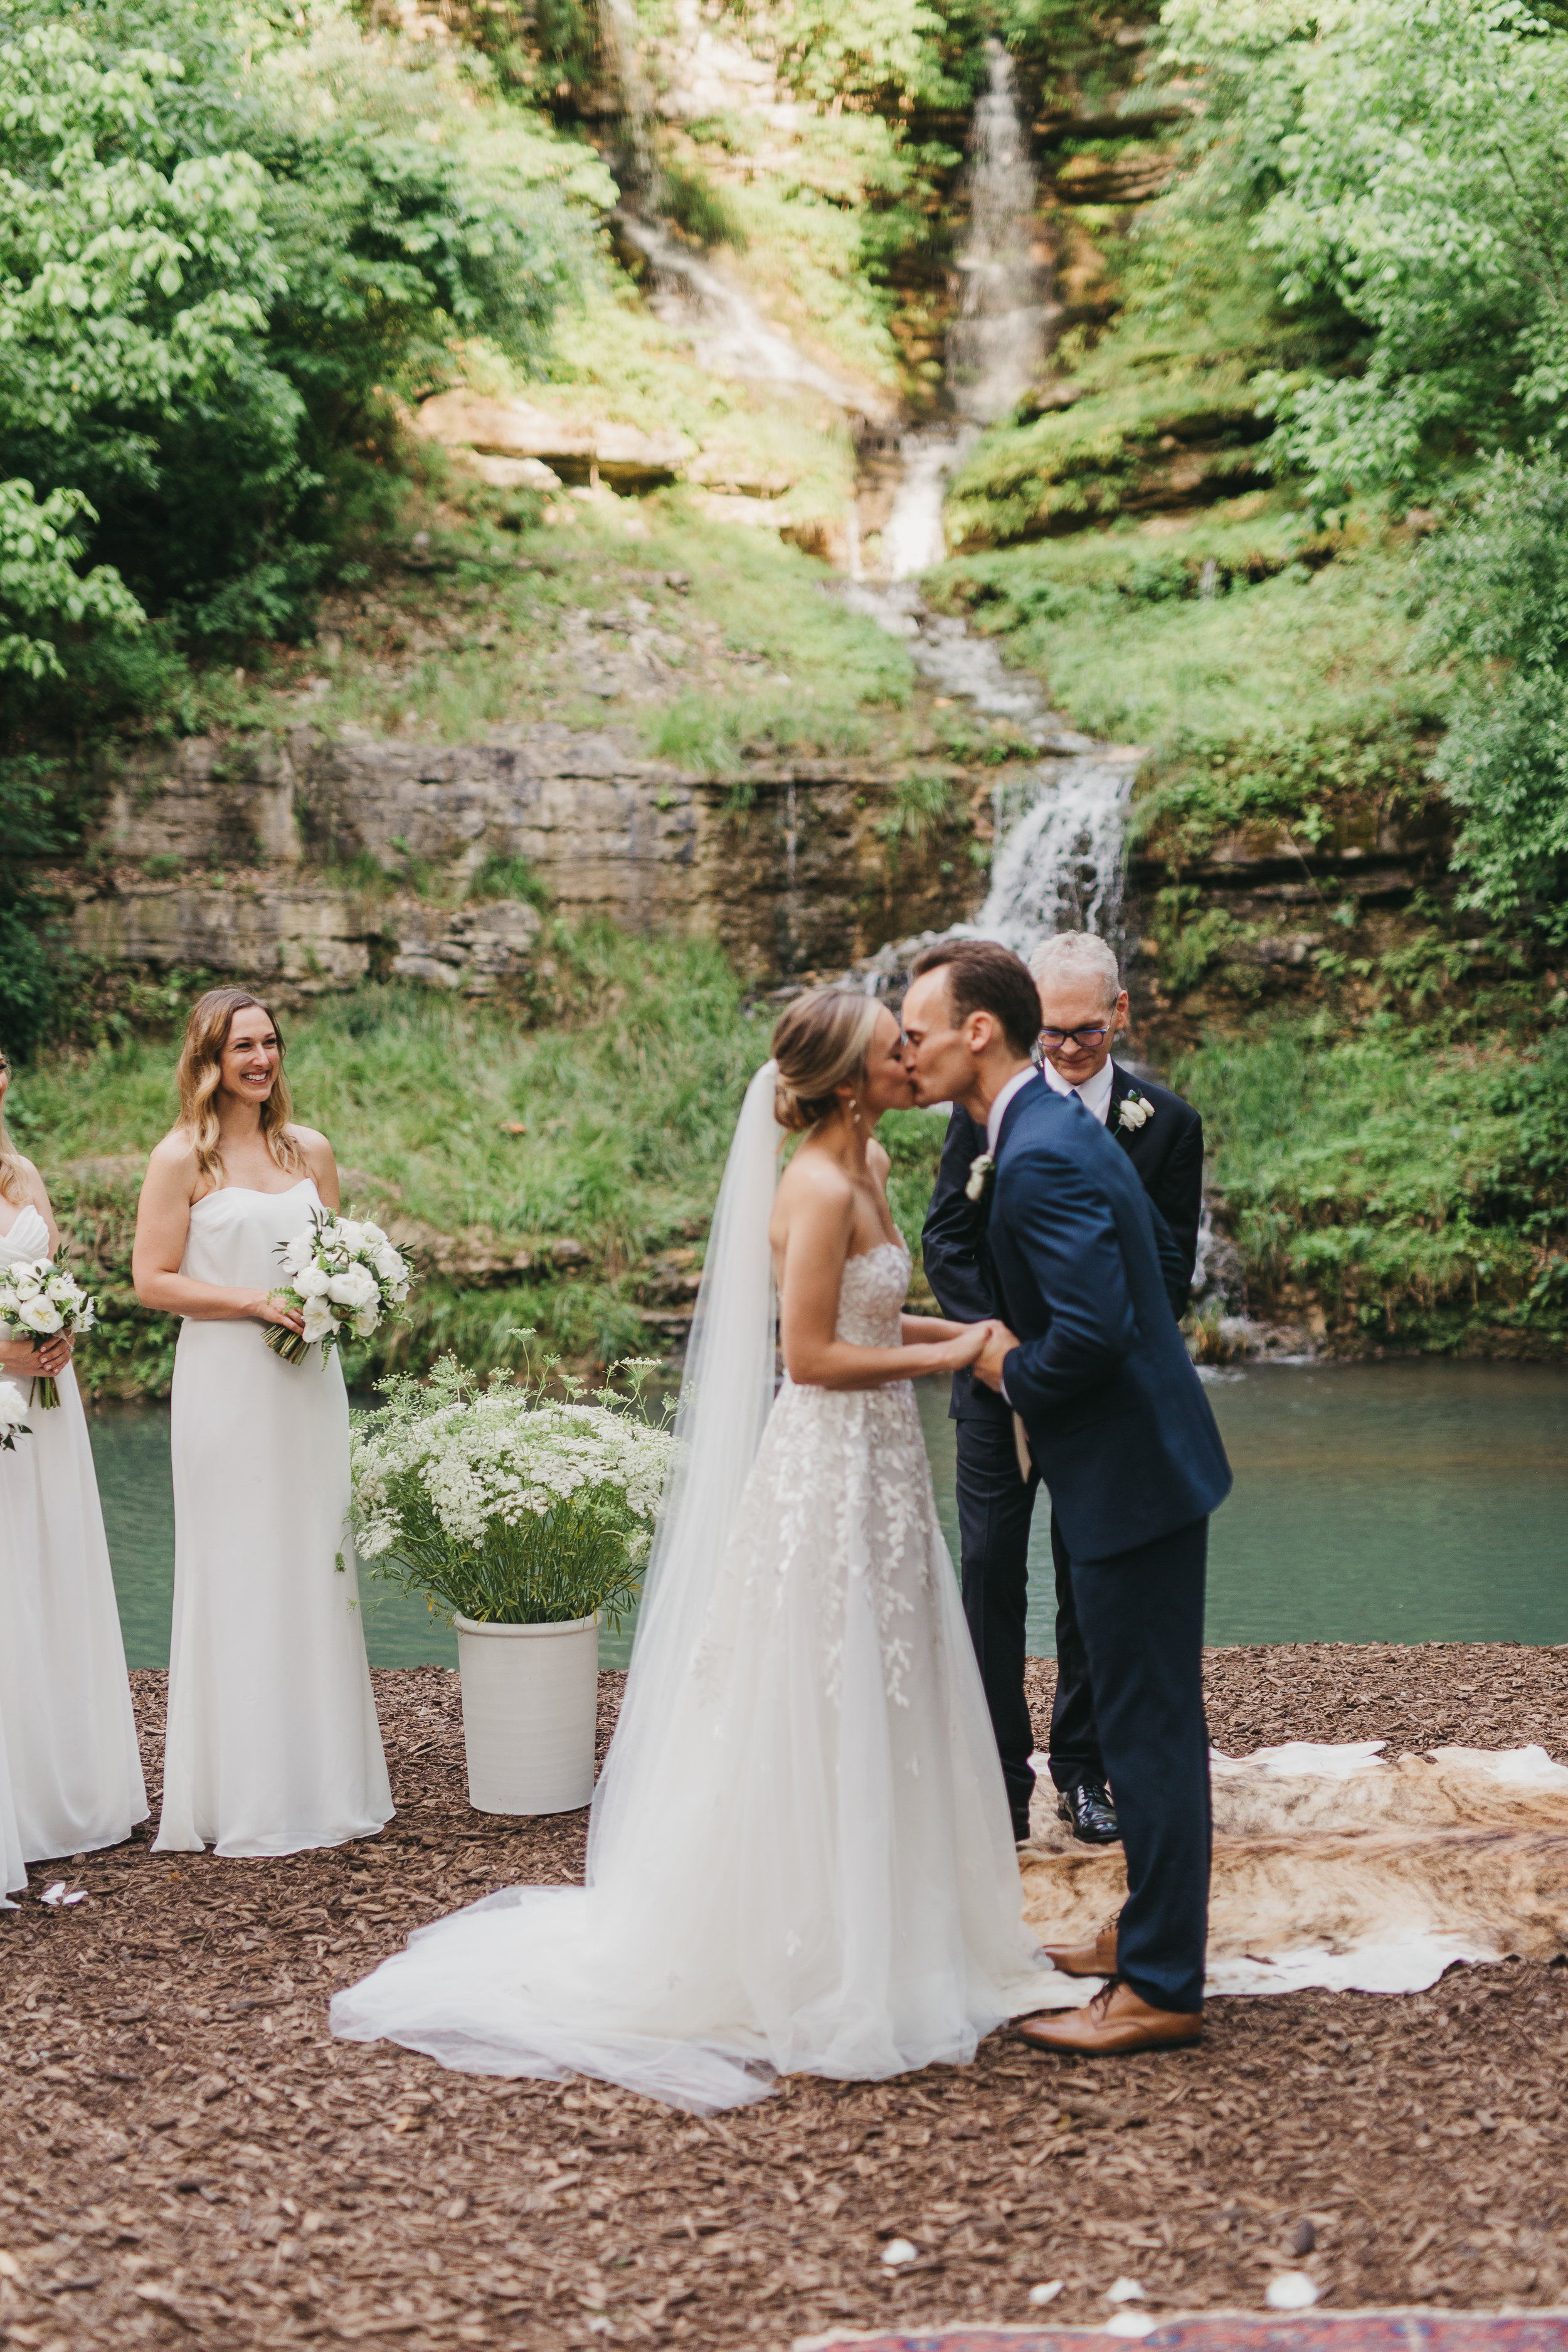 waterfall ceremony backdrop for wedding with hide rugs and greenery crocks